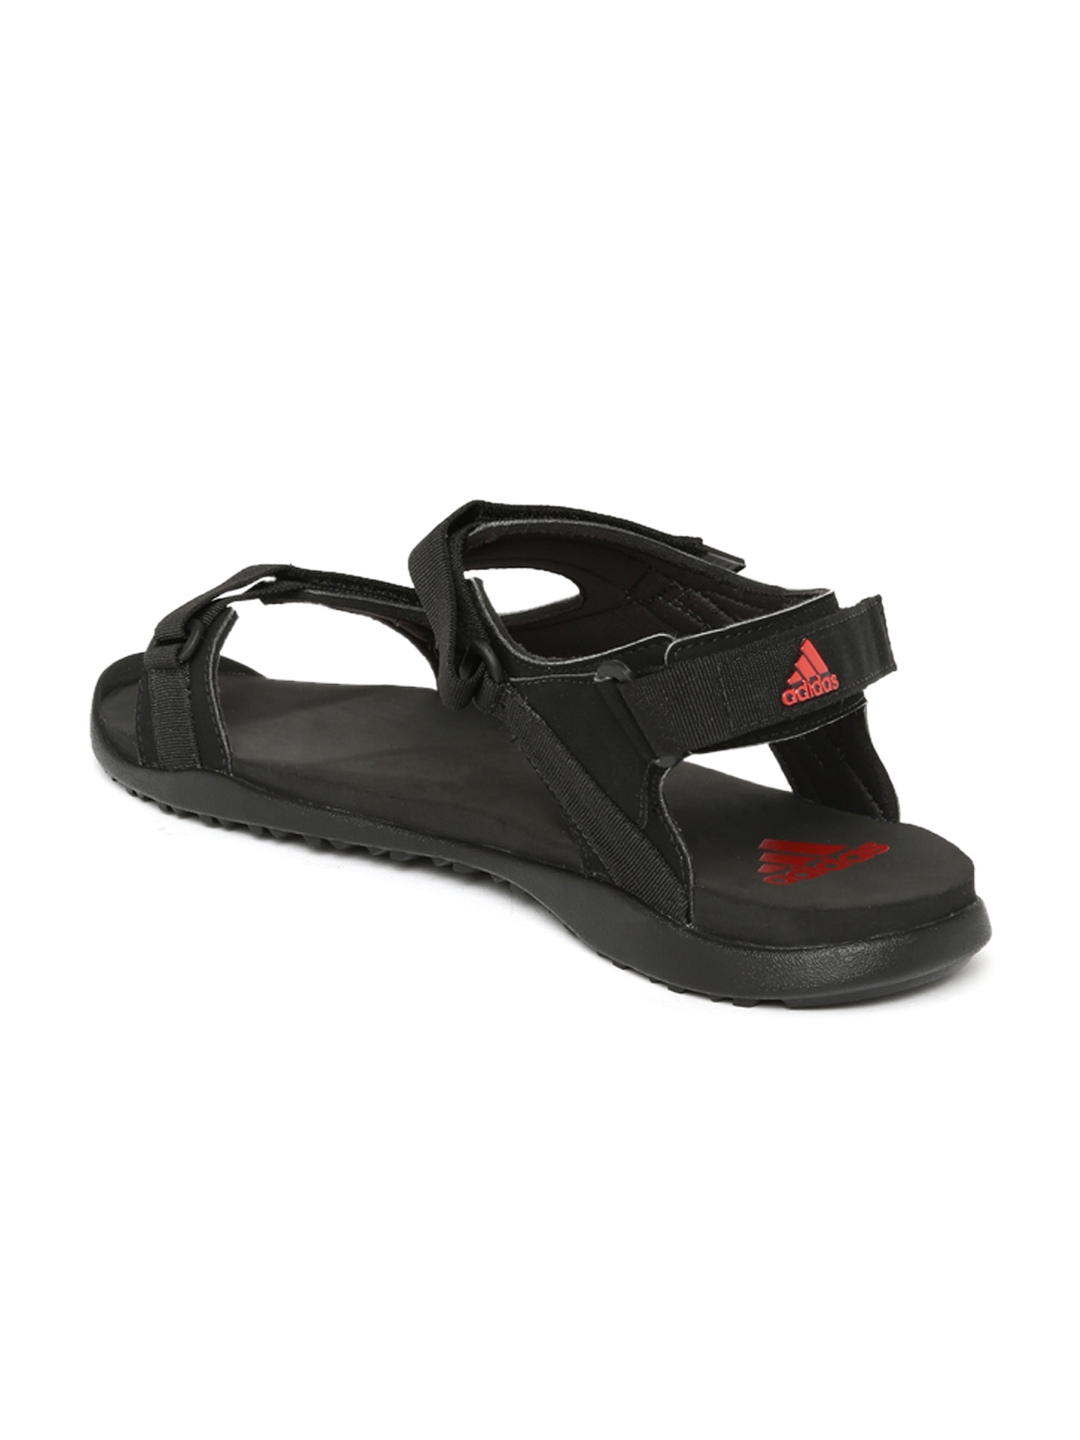 e95a0ffe907d Buy ADIDAS Men Black Ravish M Sports Sandals - Sports Sandals for Men  1501495